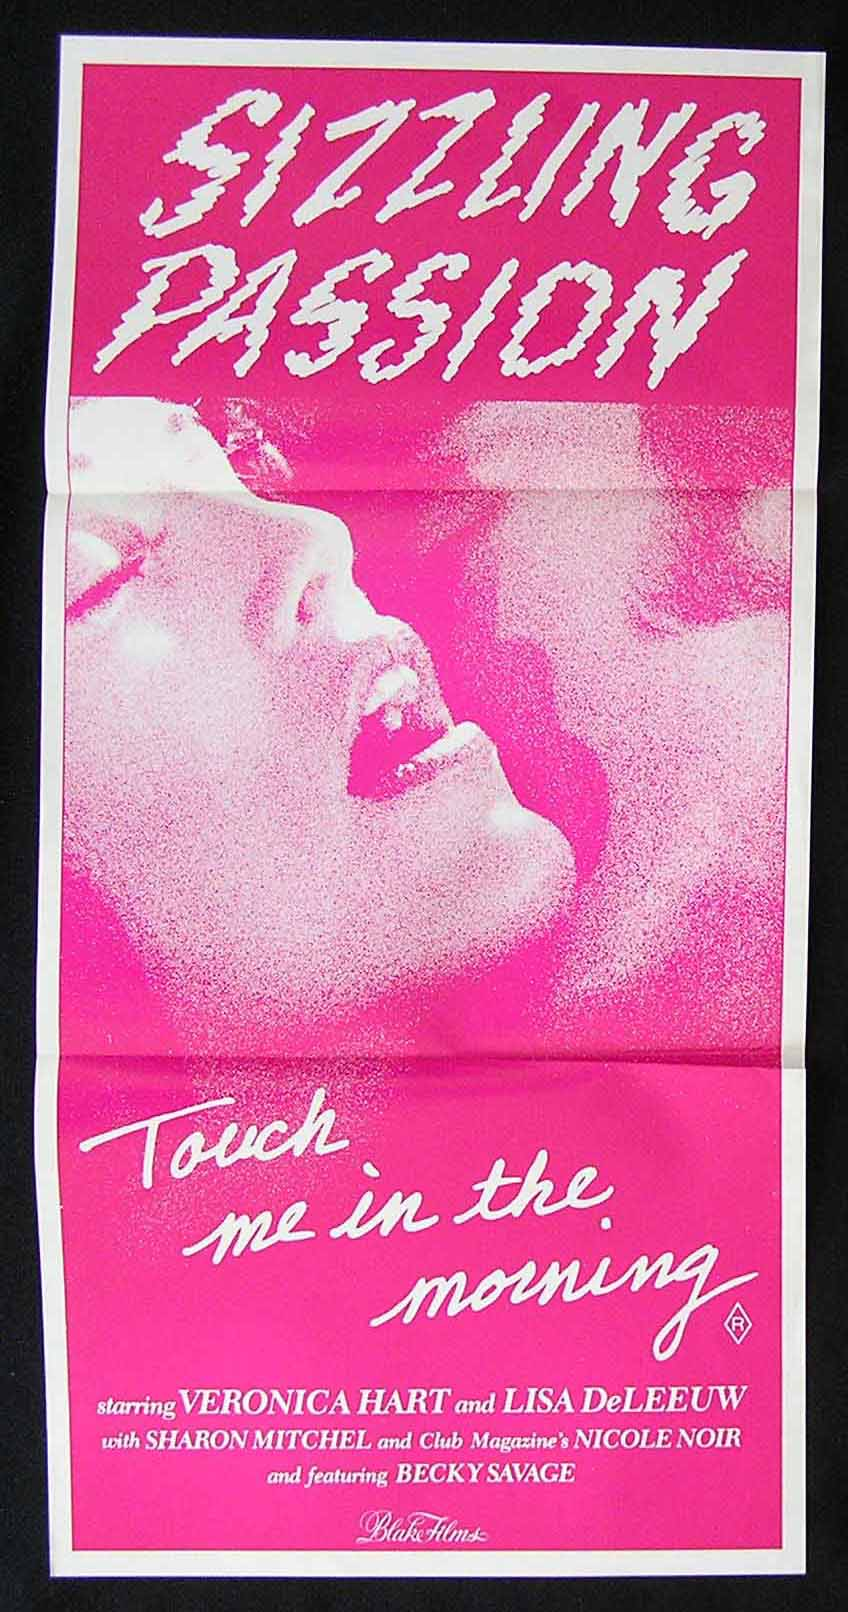 TOUCH ME IN THE MORNING '81 Veronica Hart-Sharon Mitchell Sexploitation Movie Poster